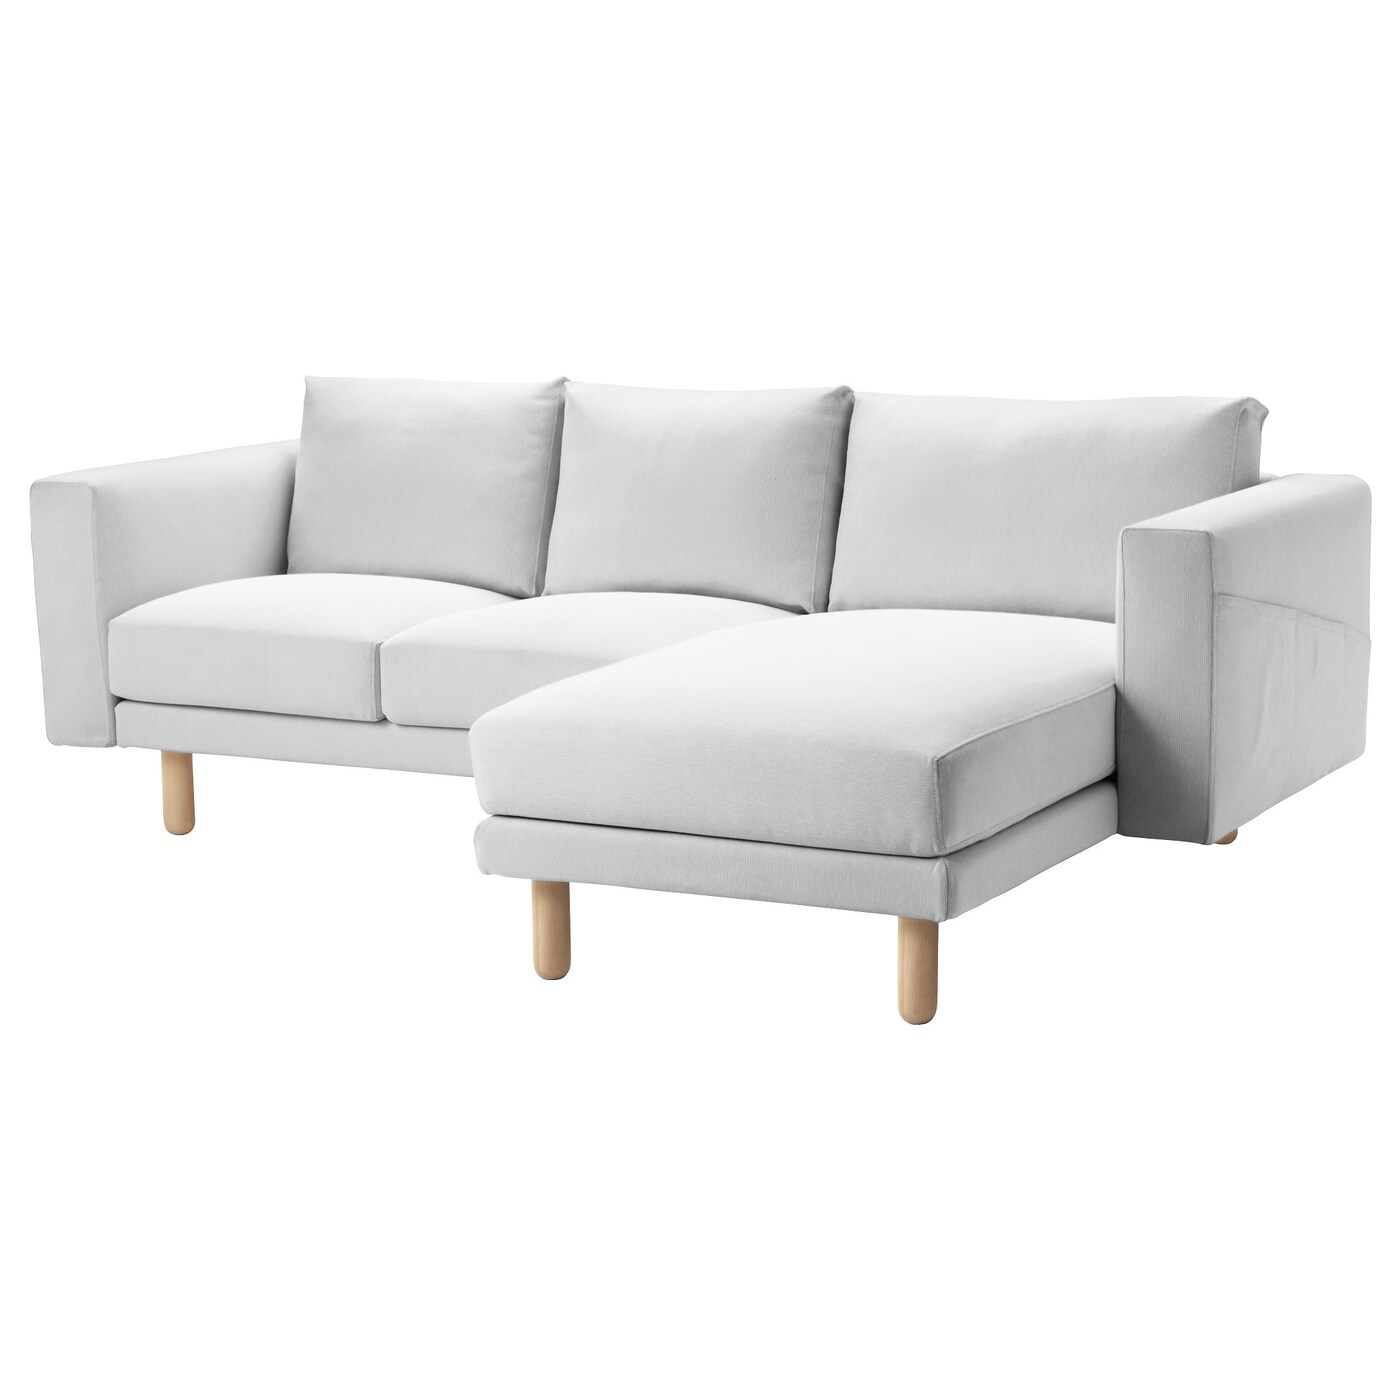 Norsborg two seat sofa with chaise longue finnsta white for 2 seater sofa with chaise